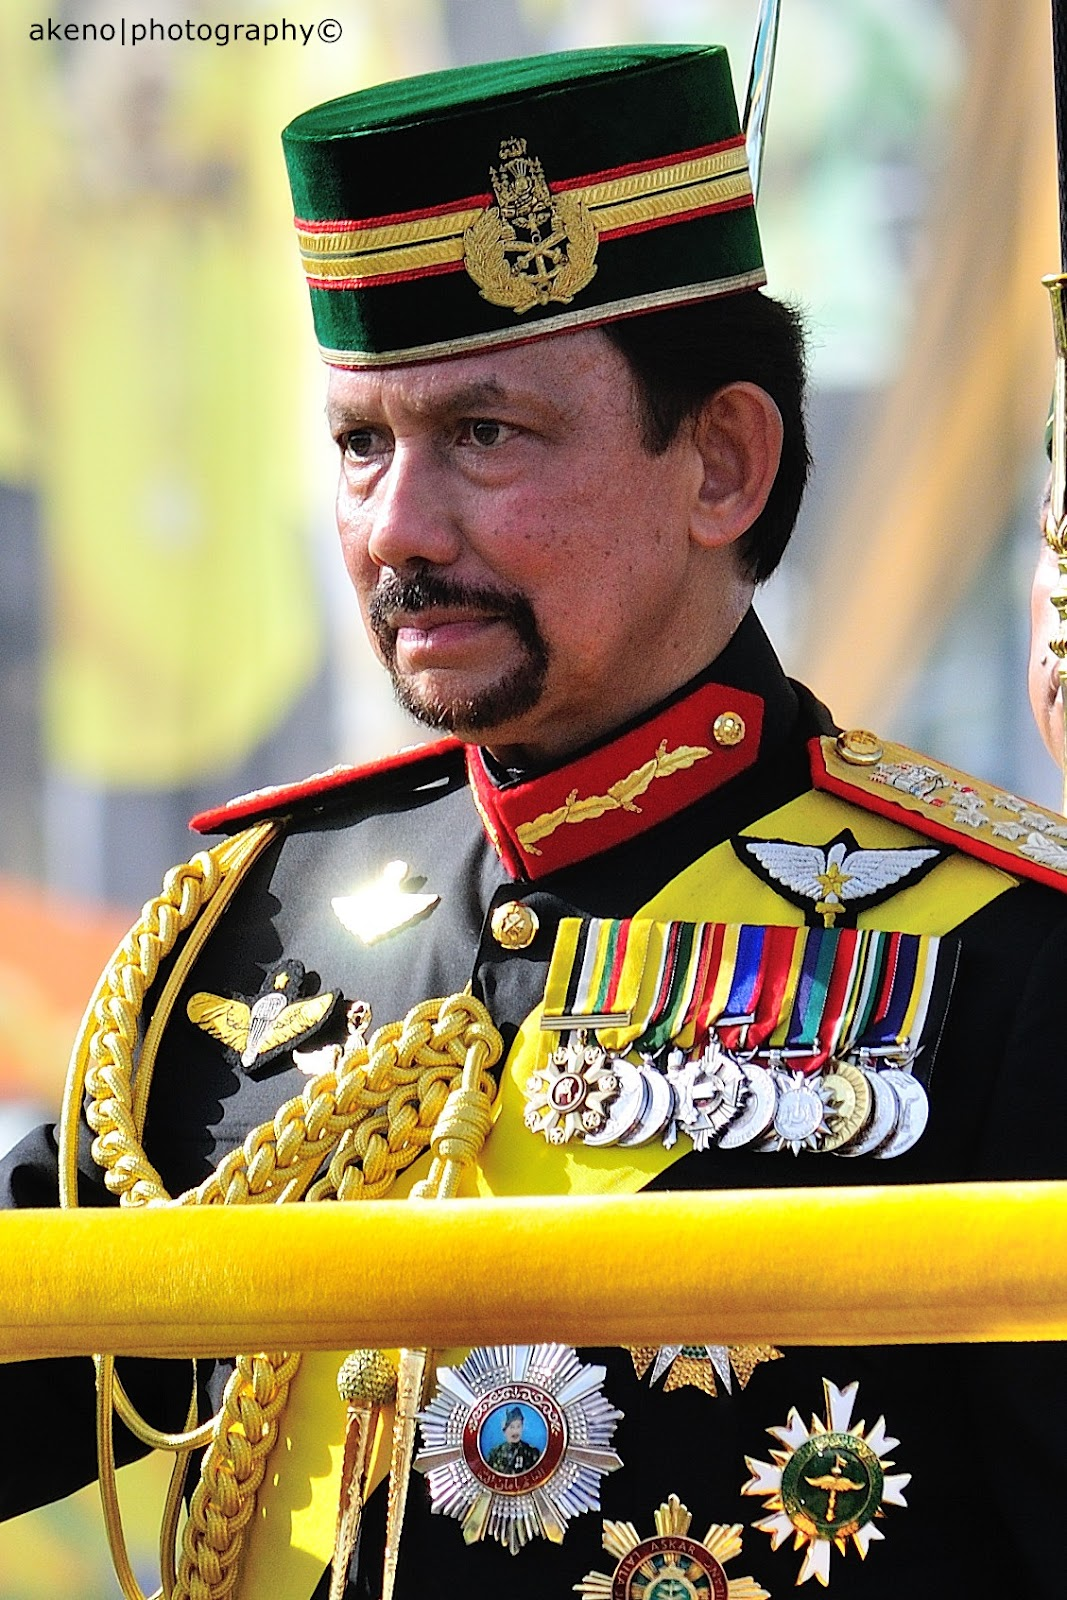 Sharing is Caring: our beloved Sultan of Brunei